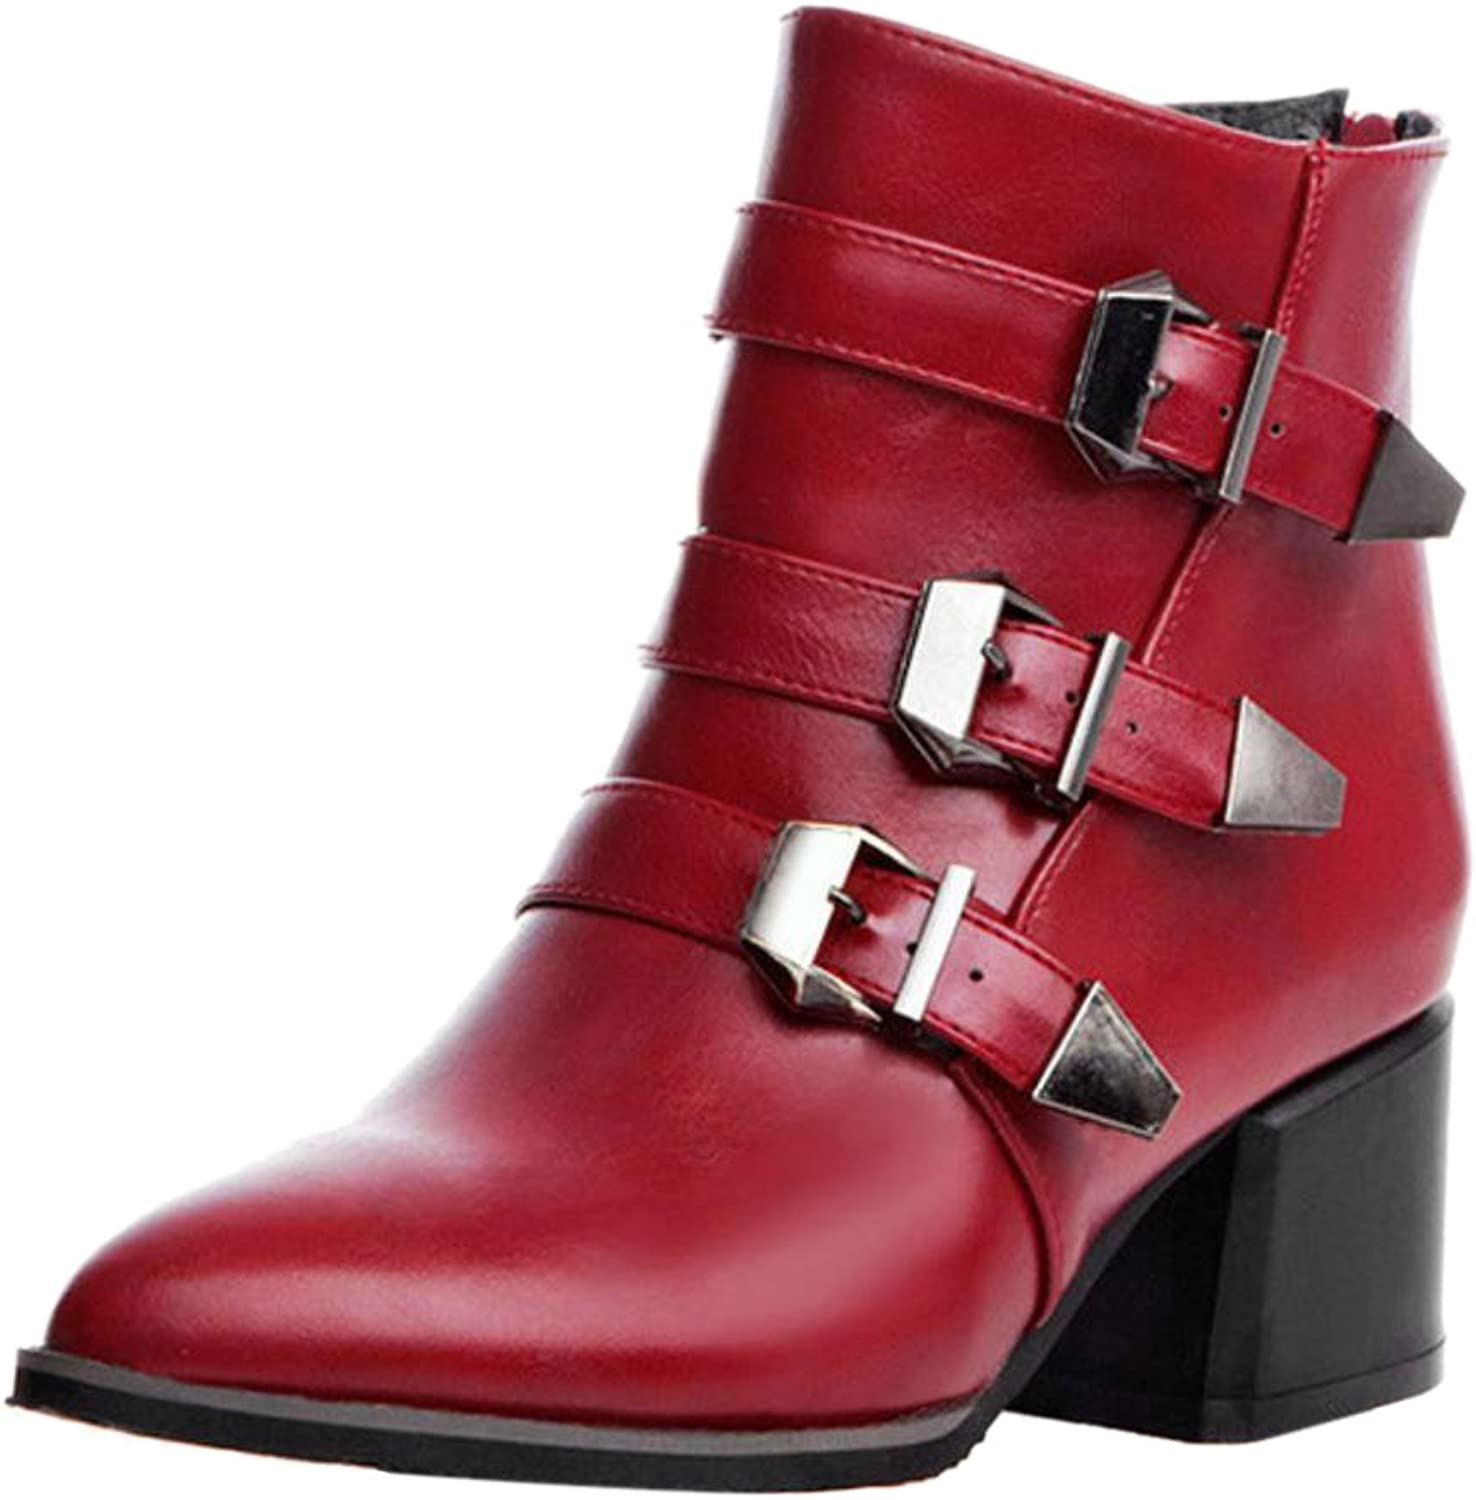 FizaiZifai Women Fashion Boots Back Zipper